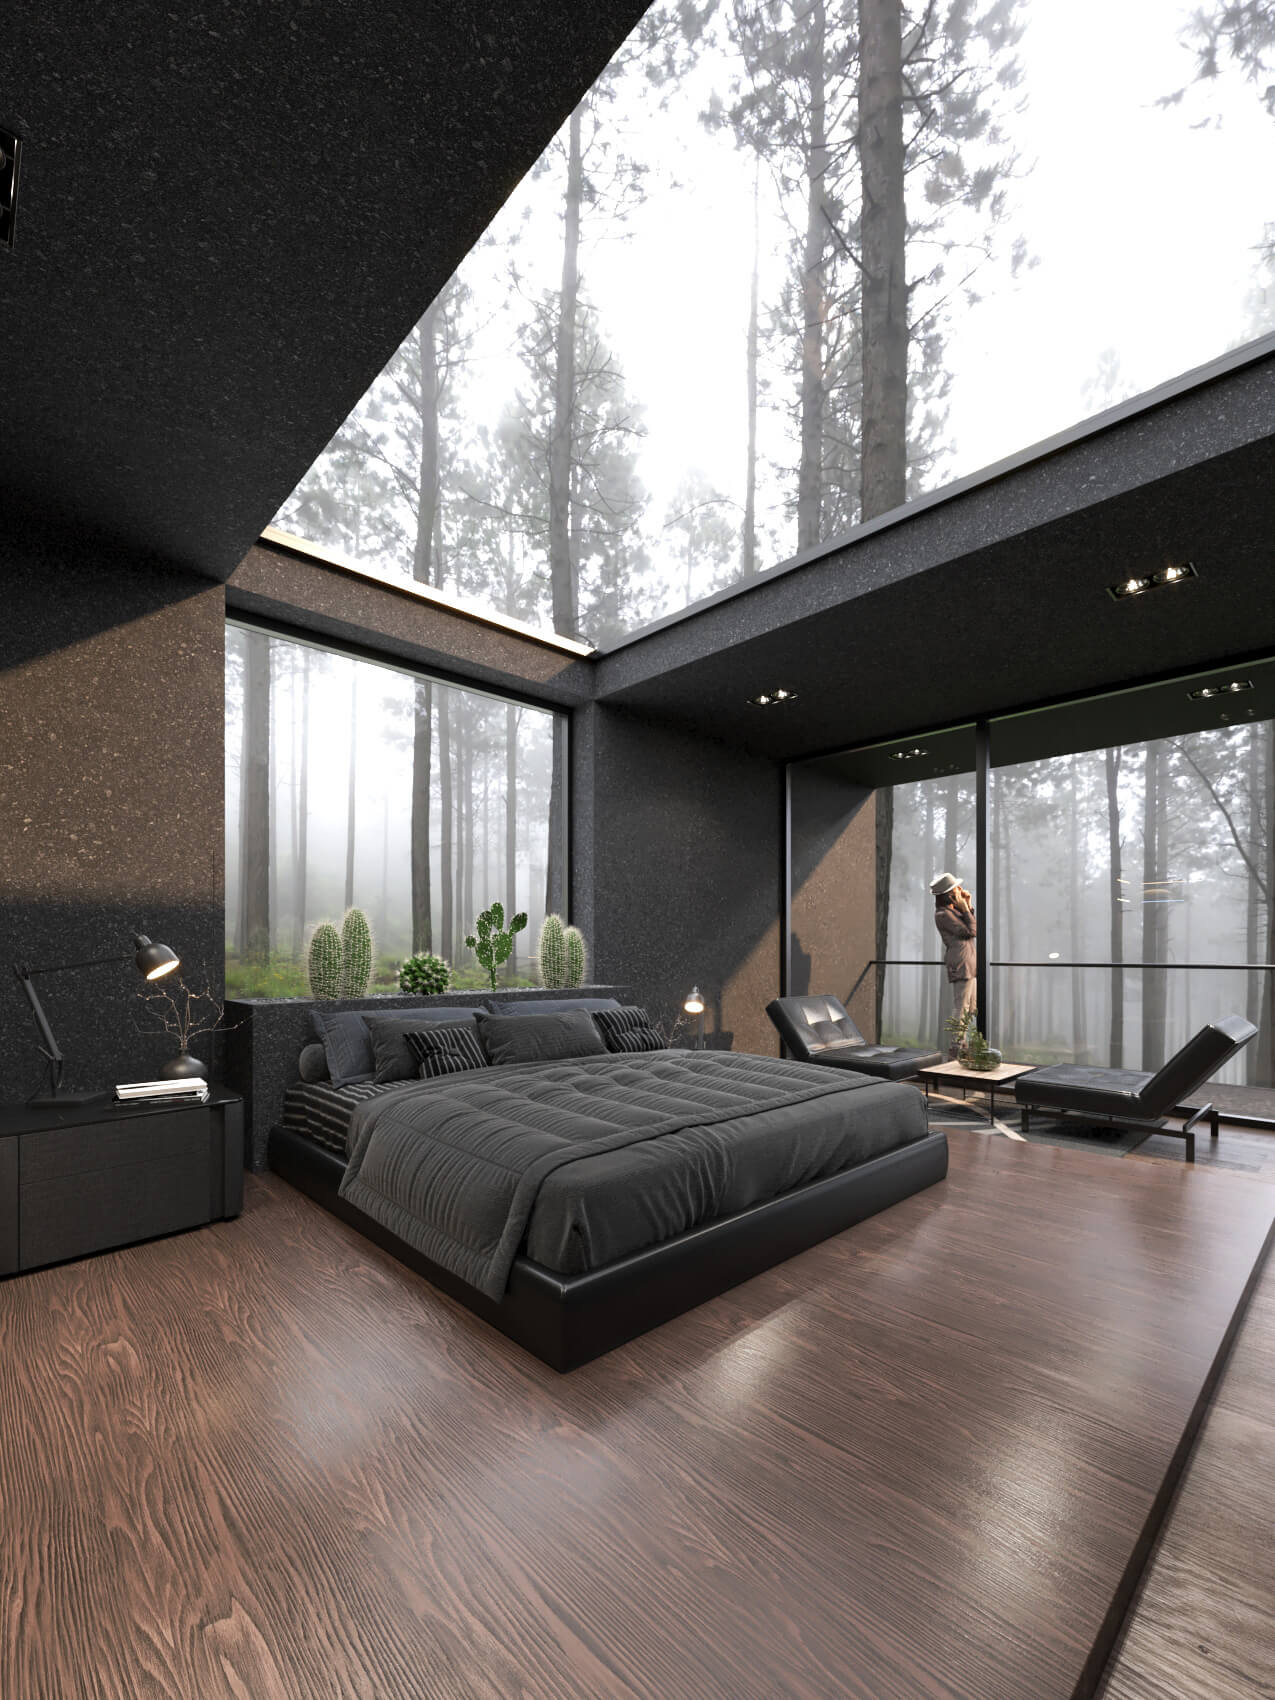 skylight over bed